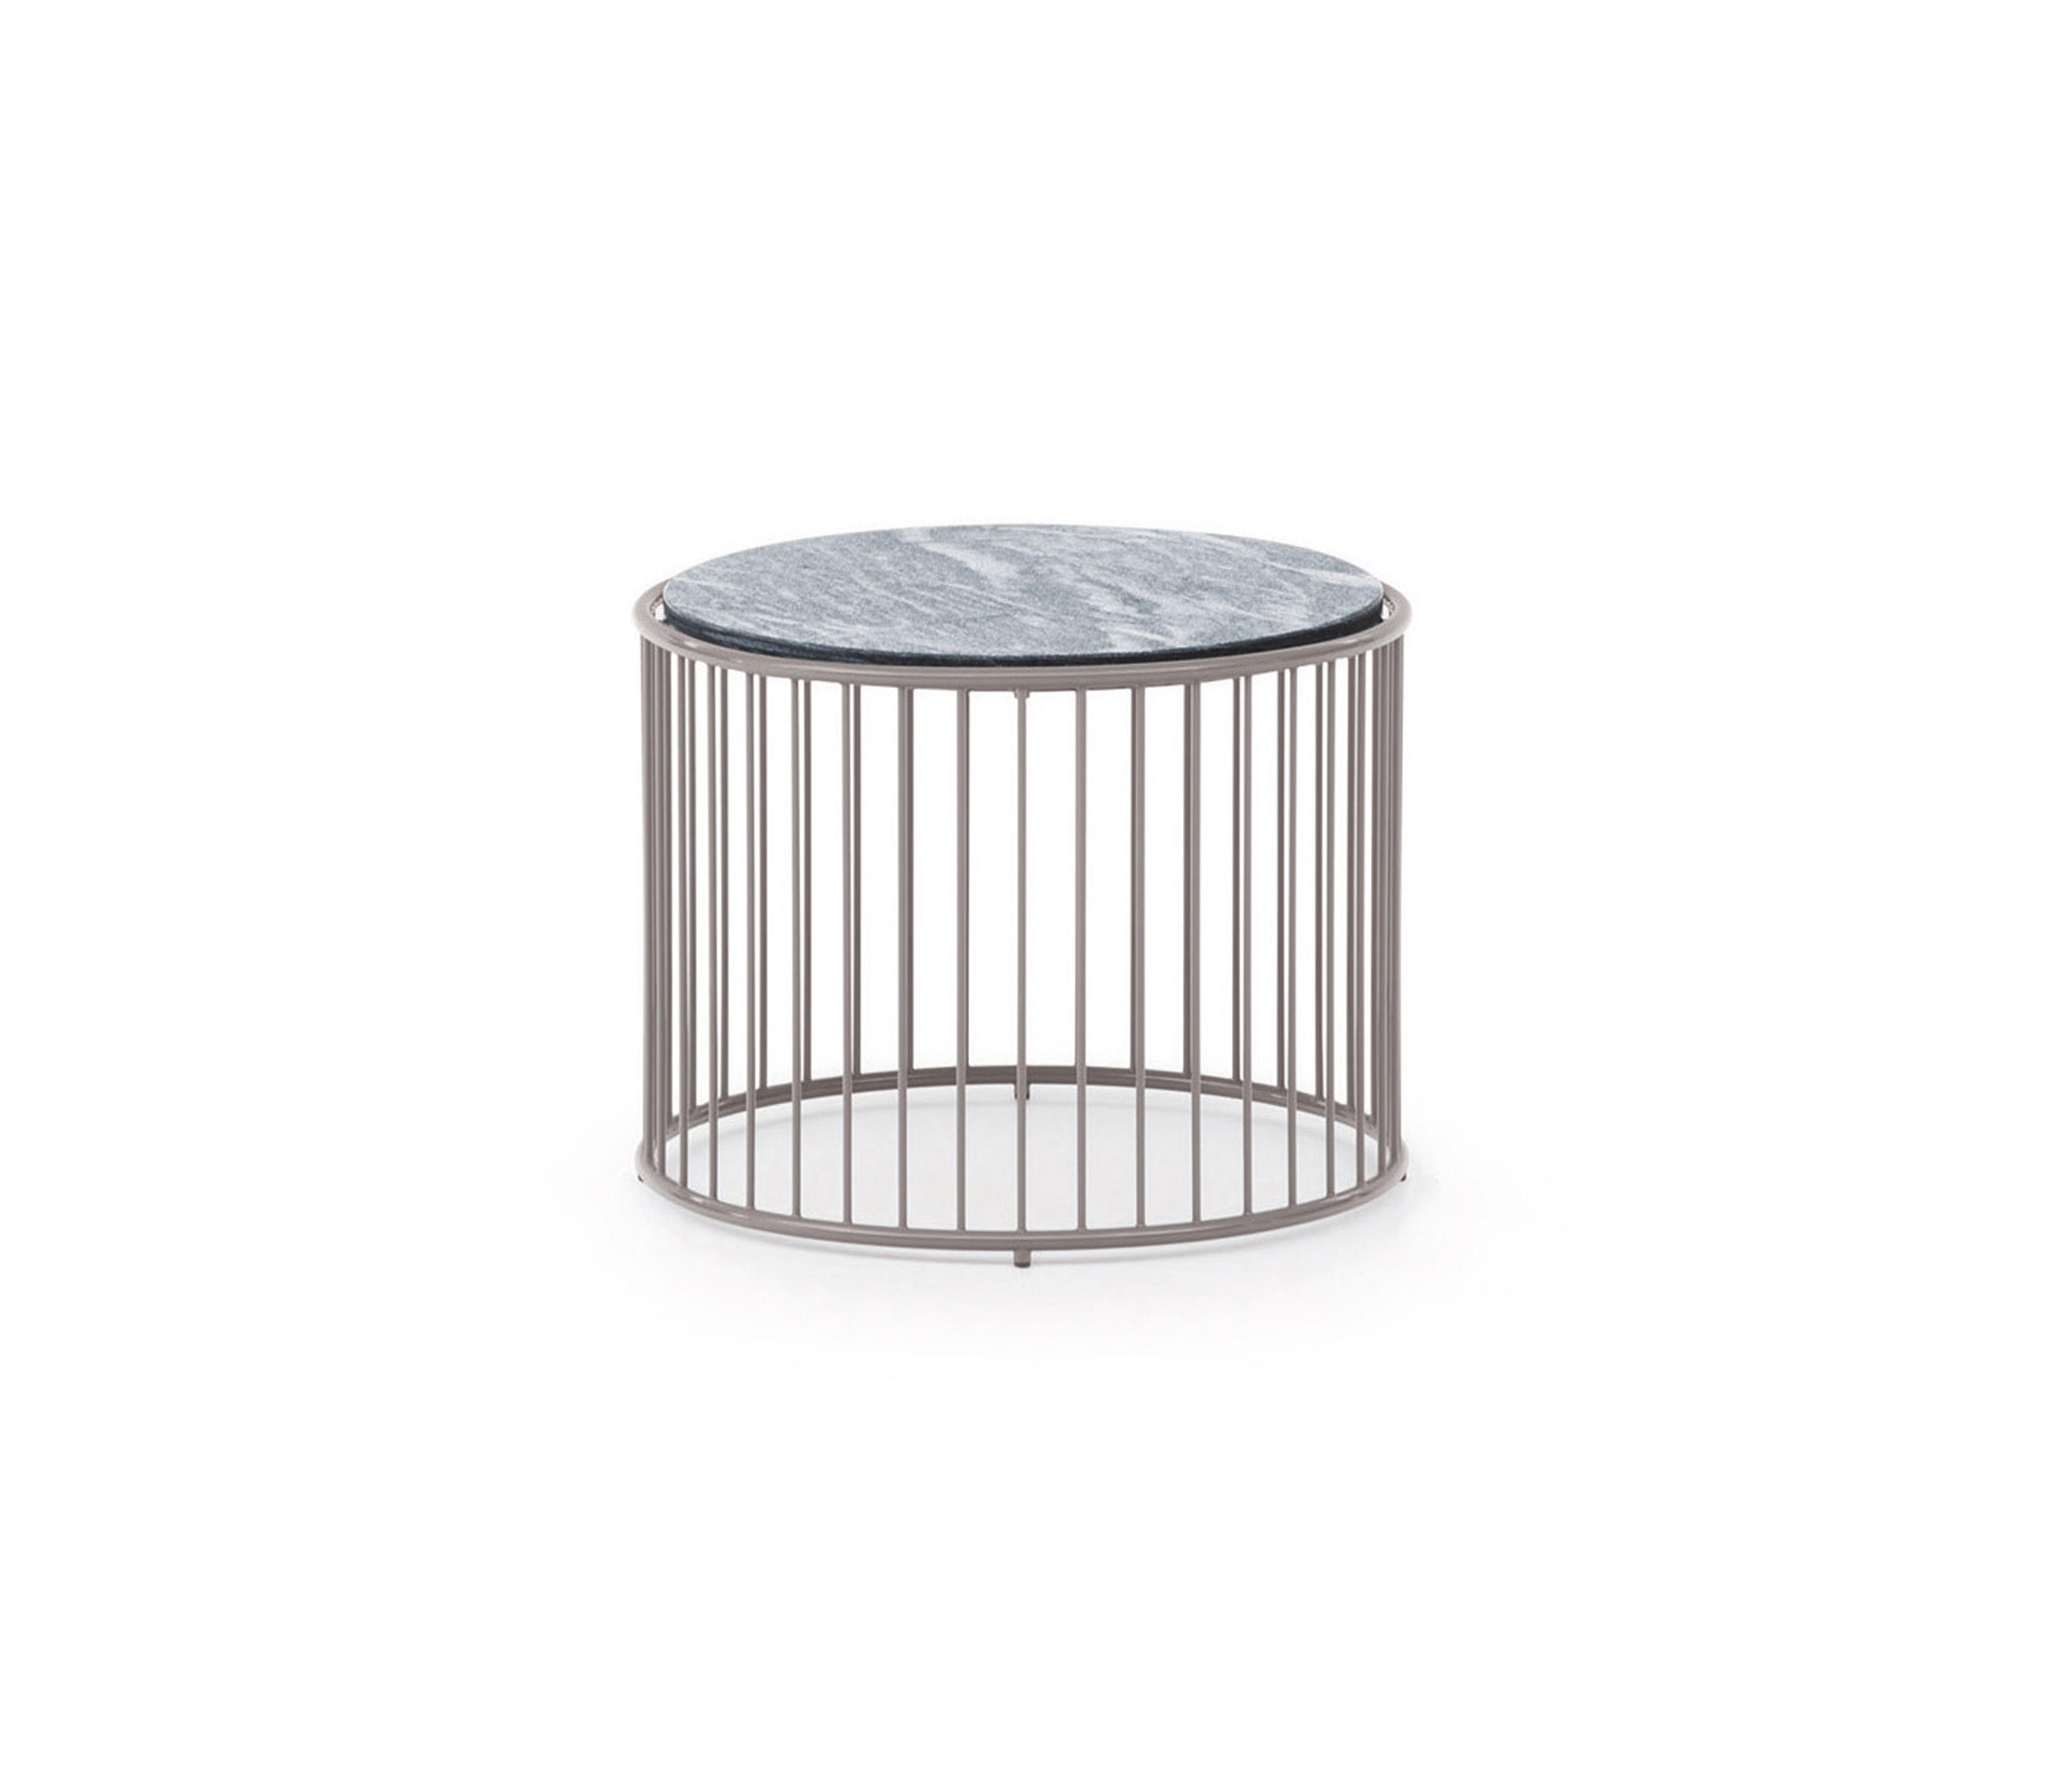 Caulfield Outdoor Coffee Table Architonic